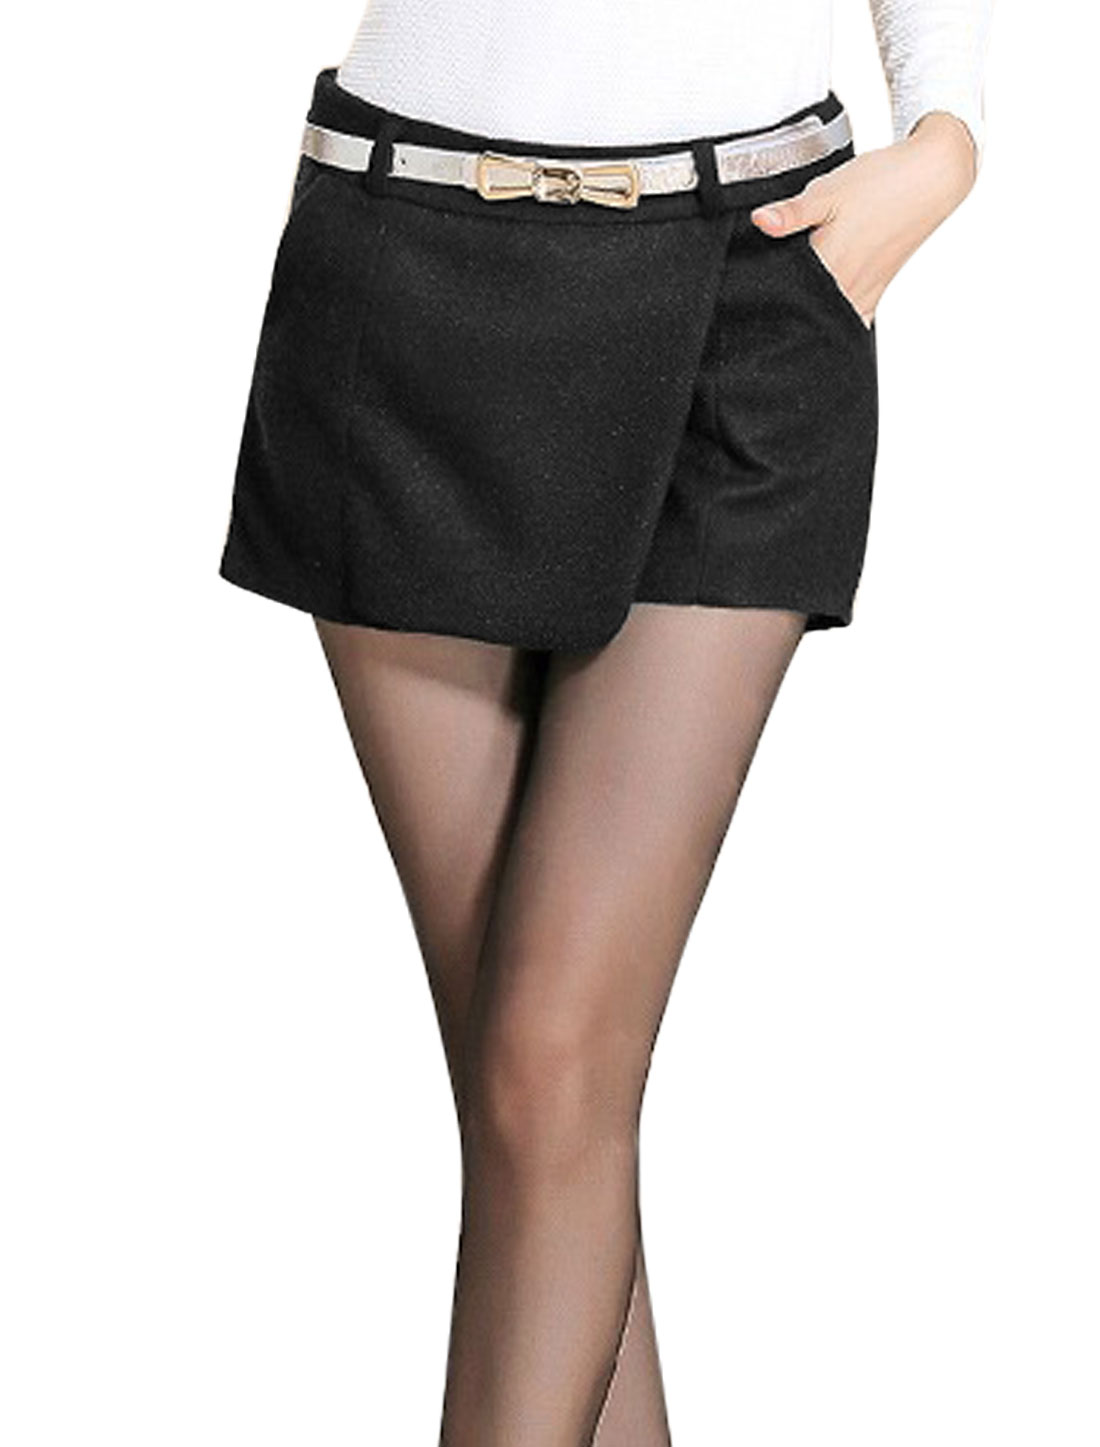 Women Belt Loop Hidden Zipper Side Double Slant Pockets Skorts Black M